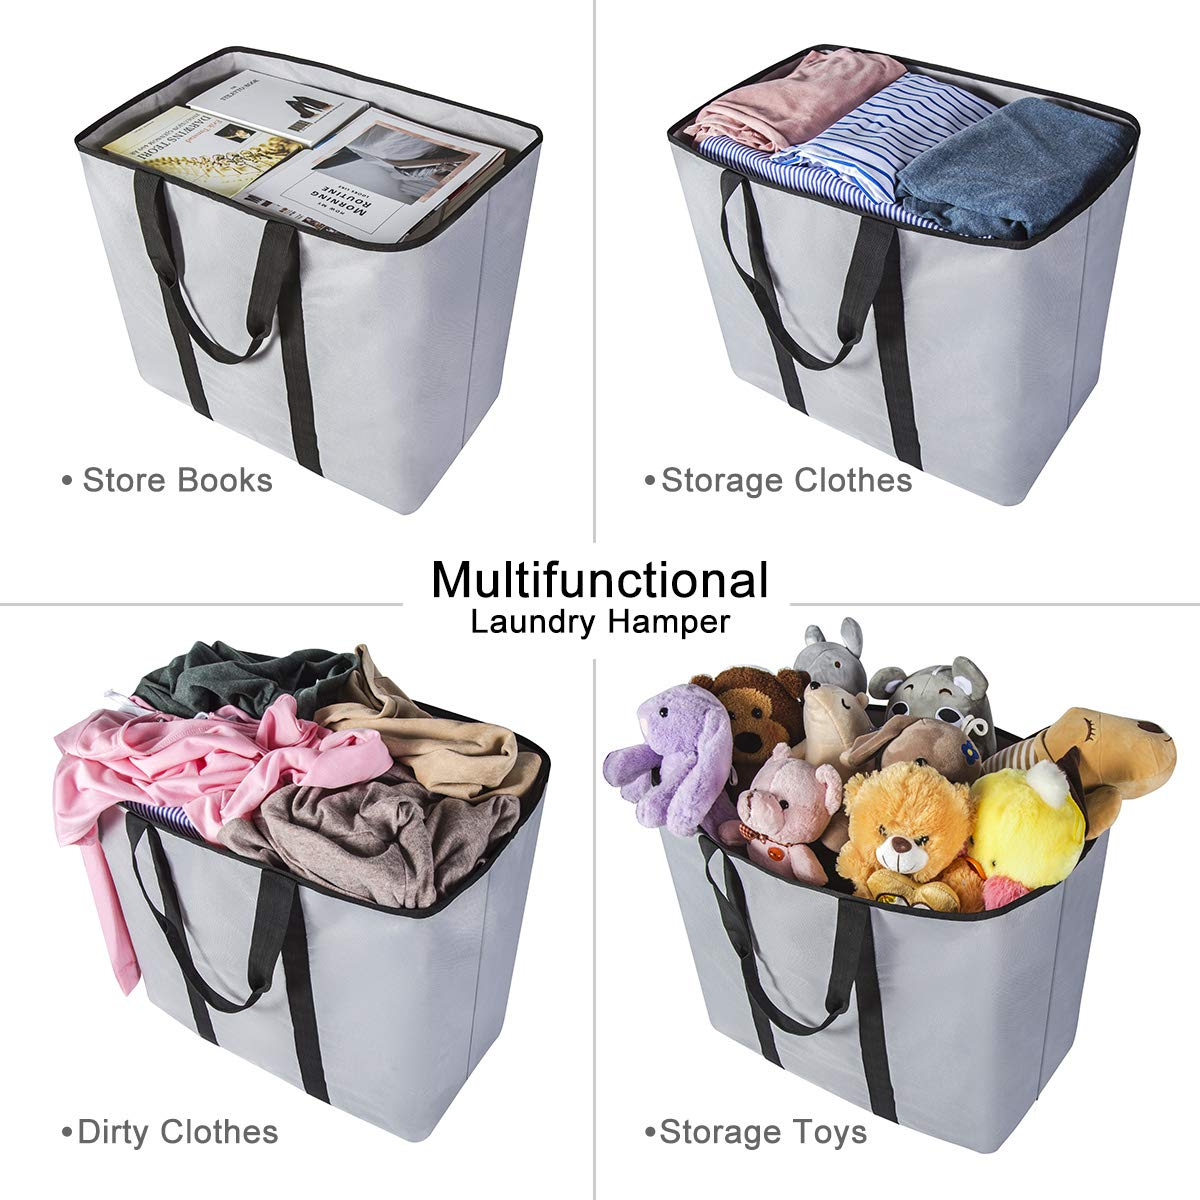 WISHPOOL Extra Large Laundry Basket Shopping Tote Bag Collapsible Laundry Hamper Handles Foldable Laundry Bags Standing Dirty Clothes Storage Organizer (Light Grey)